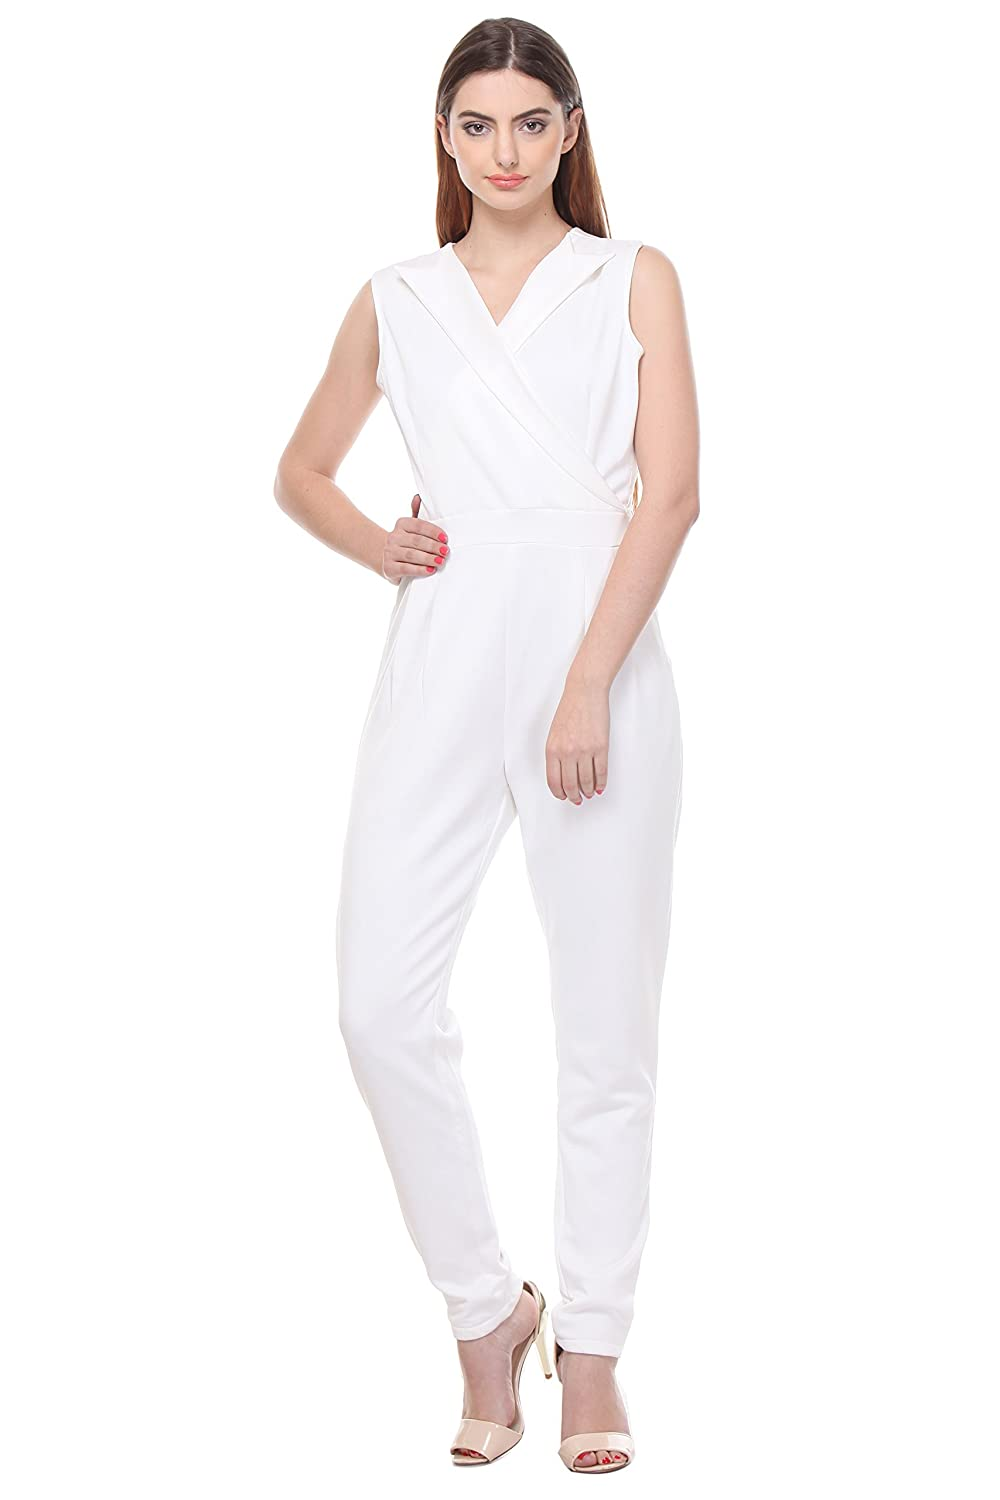 2fddcf85ee1 AIDA Women s White Jersey Cross Back Solid Jumpsuit  Amazon.in  Clothing    Accessories